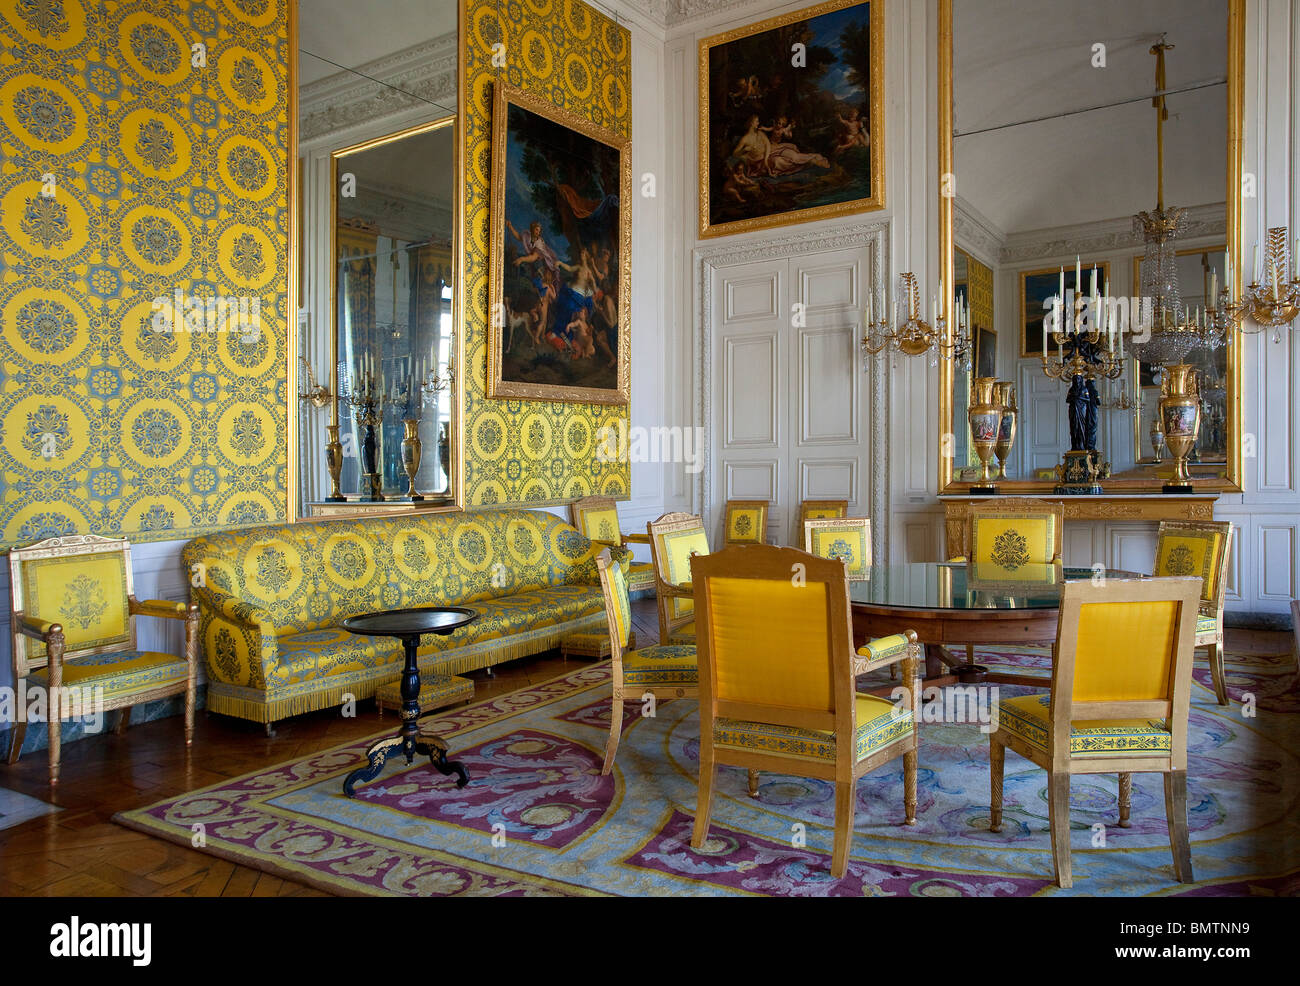 Chateau de versailles the grand trianon the salon frais for Salon de versailles